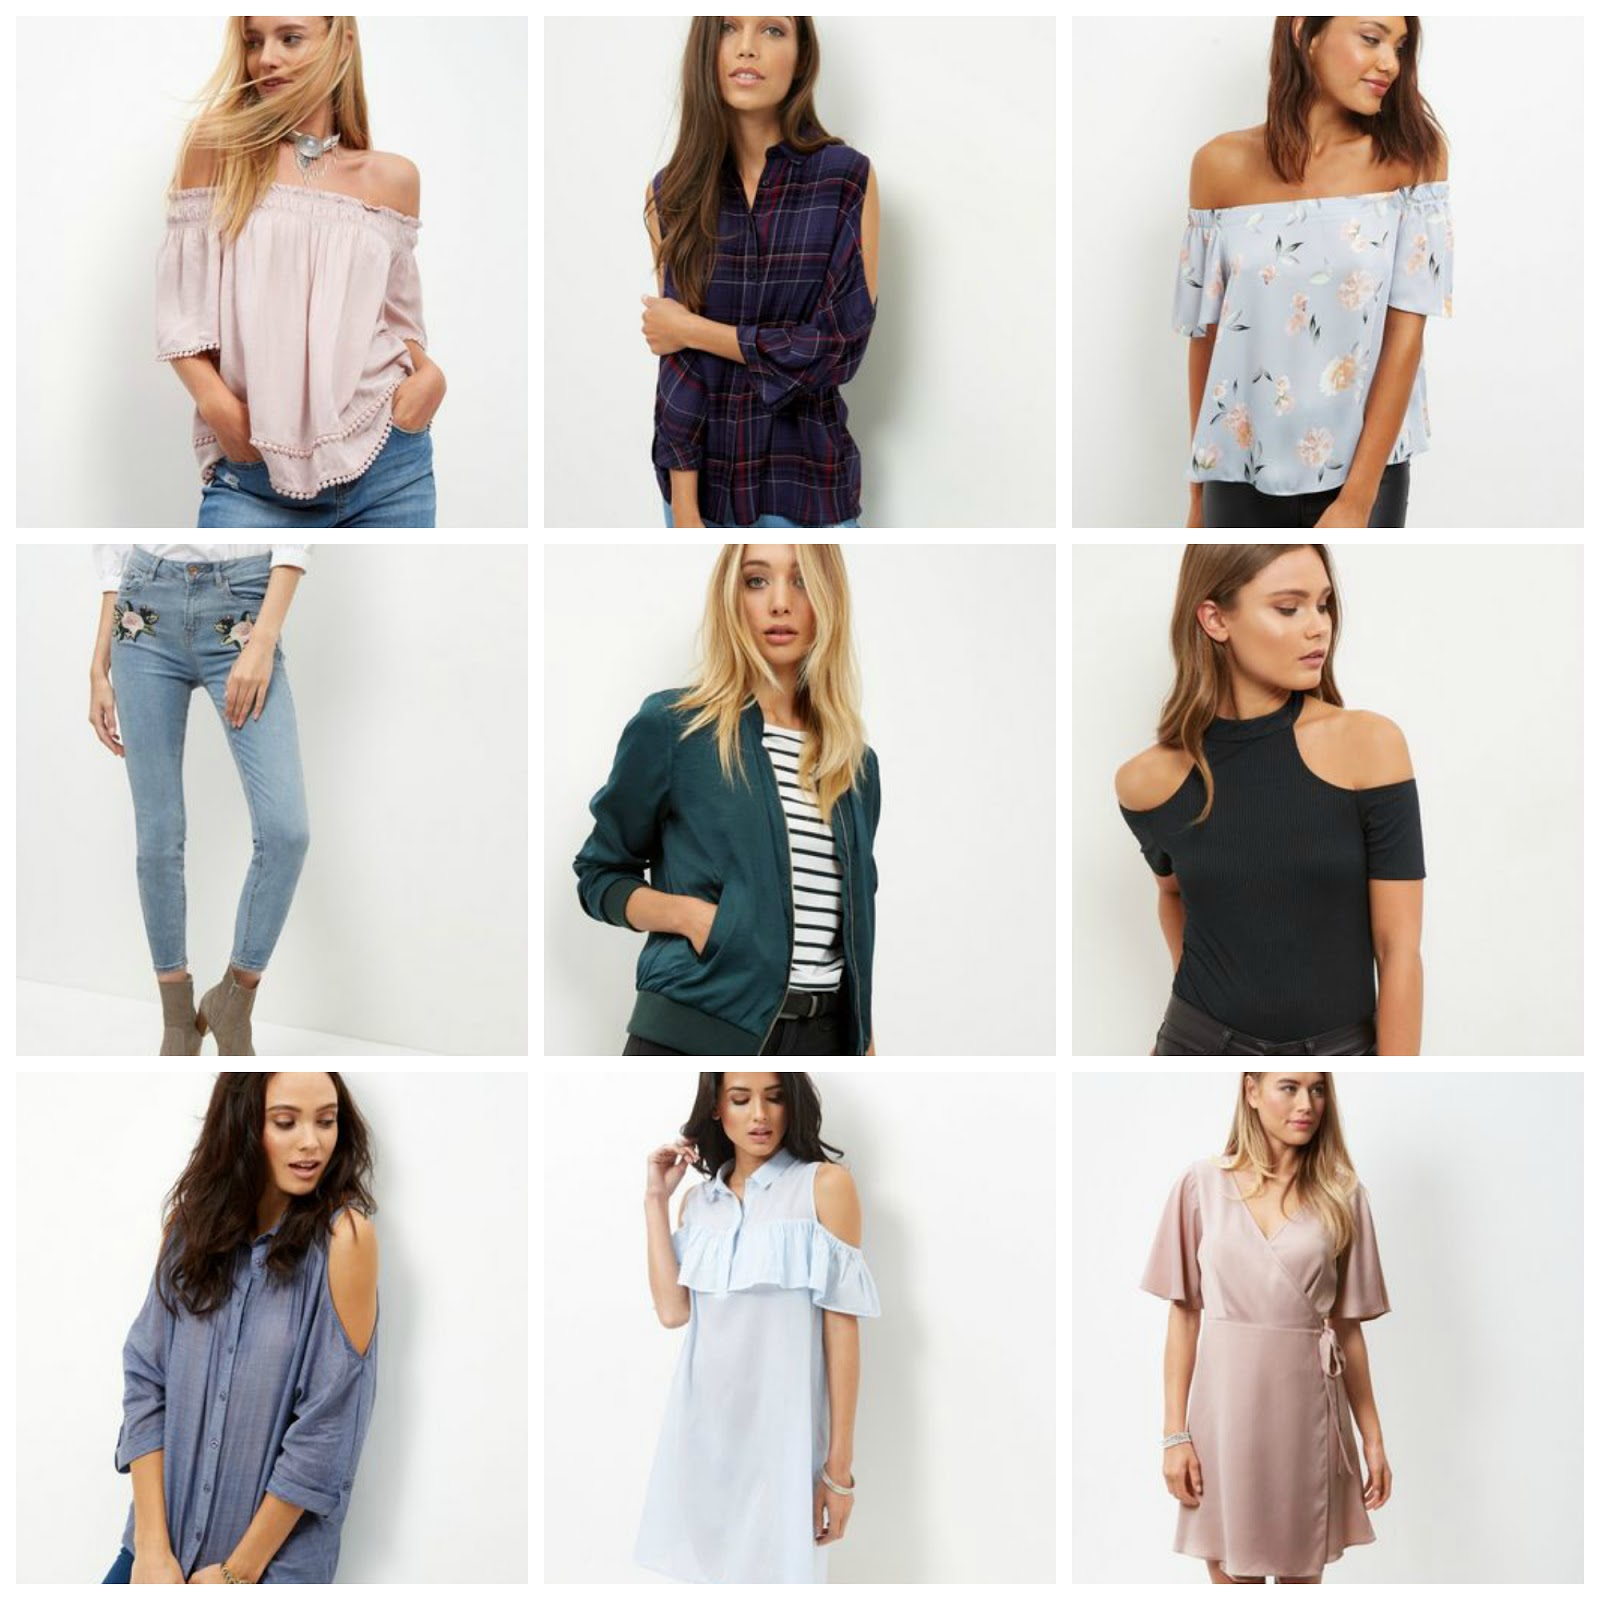 New Look Wish List | Life in Excess Blog